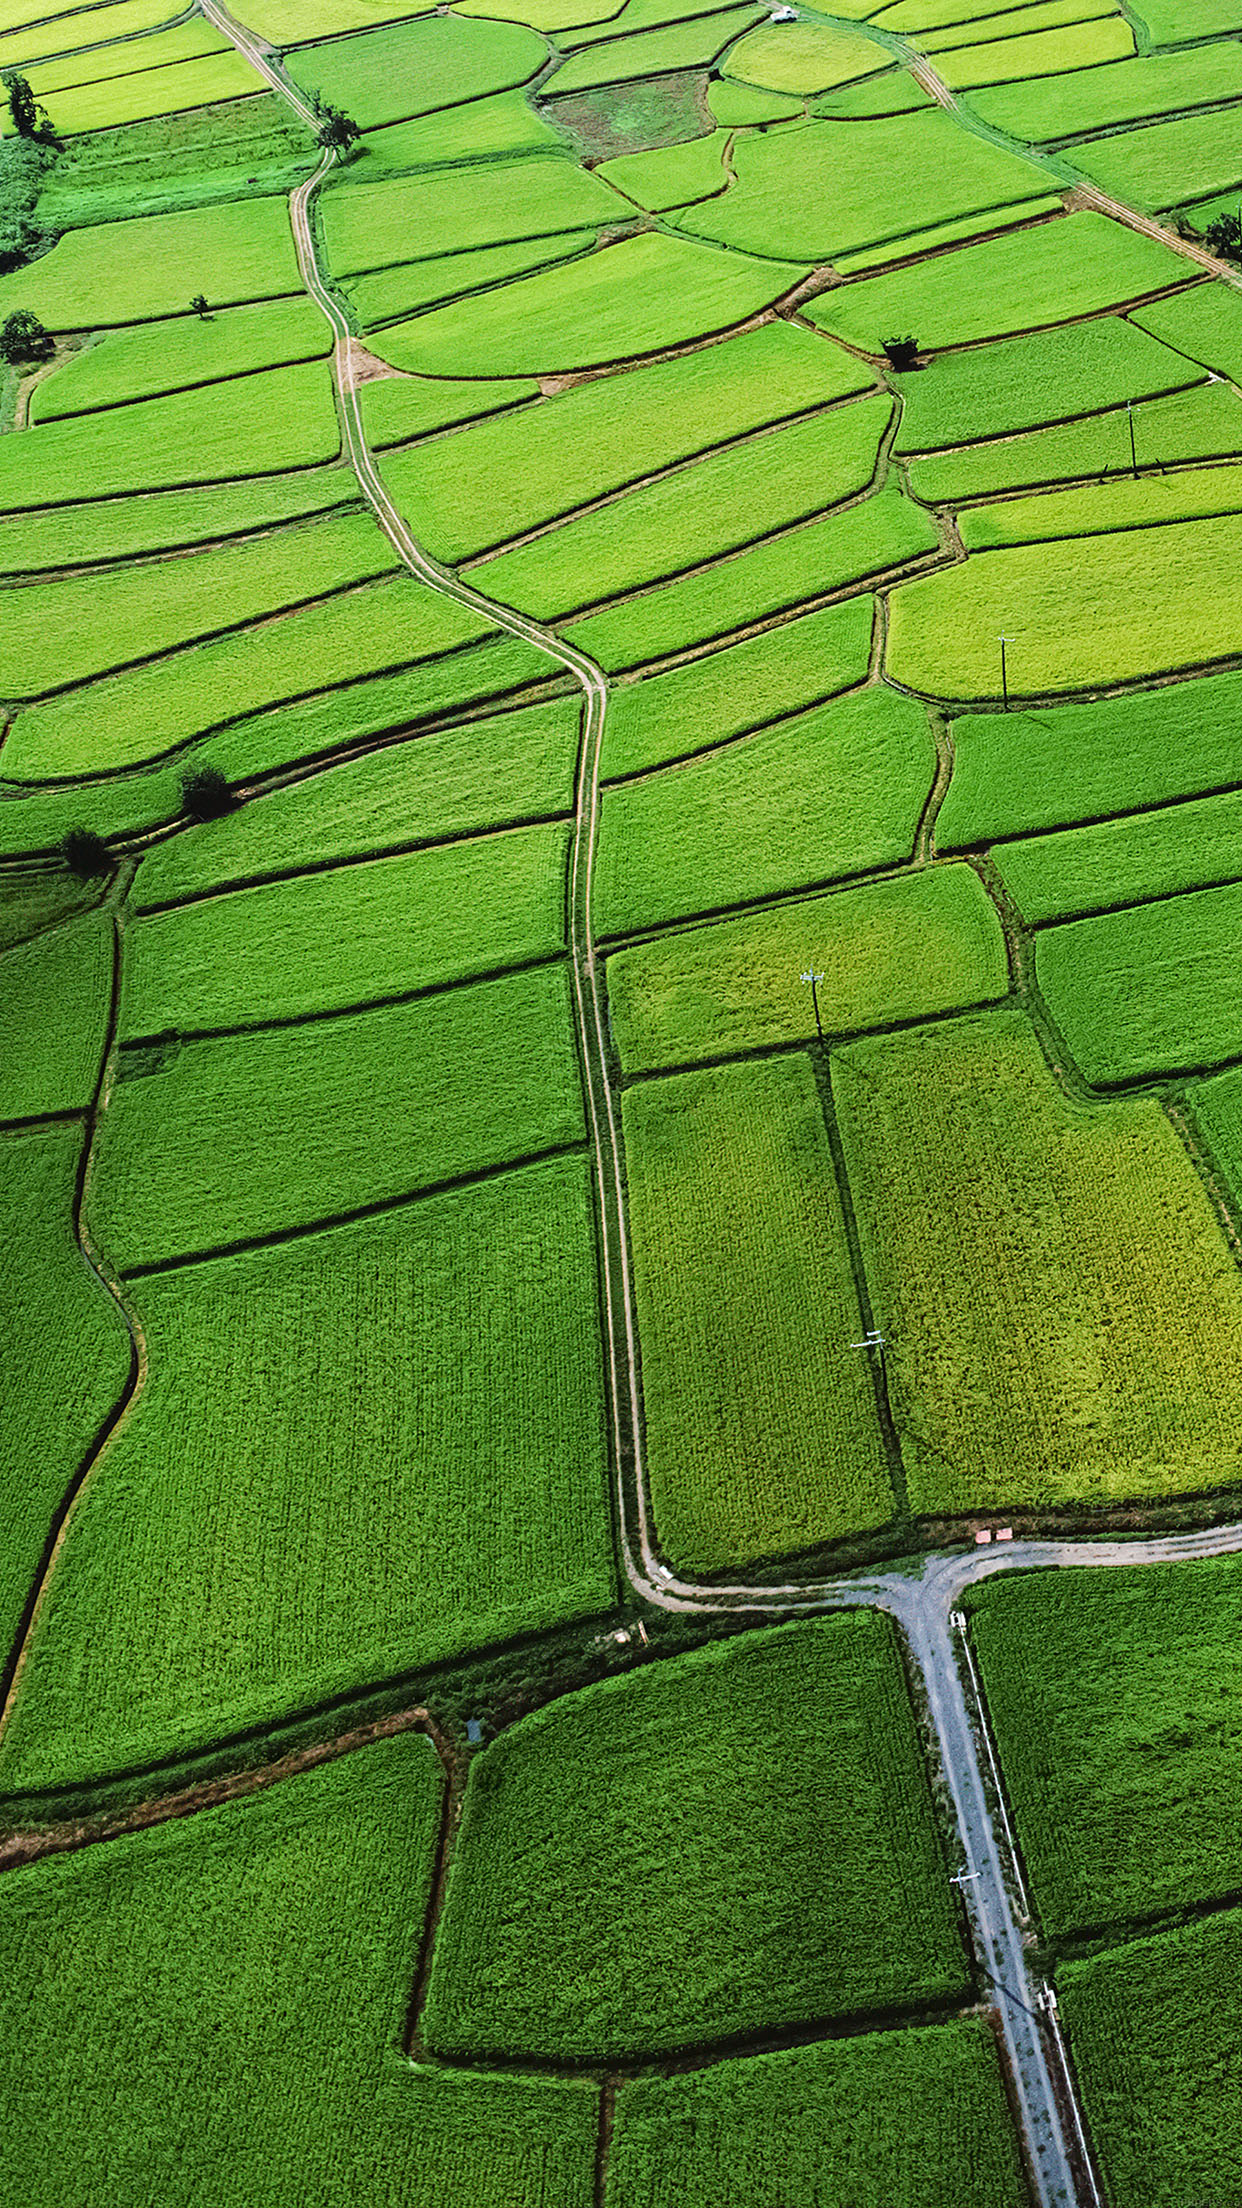 mb57-wallpaper-rice-paddy-field-nature - Papers.co